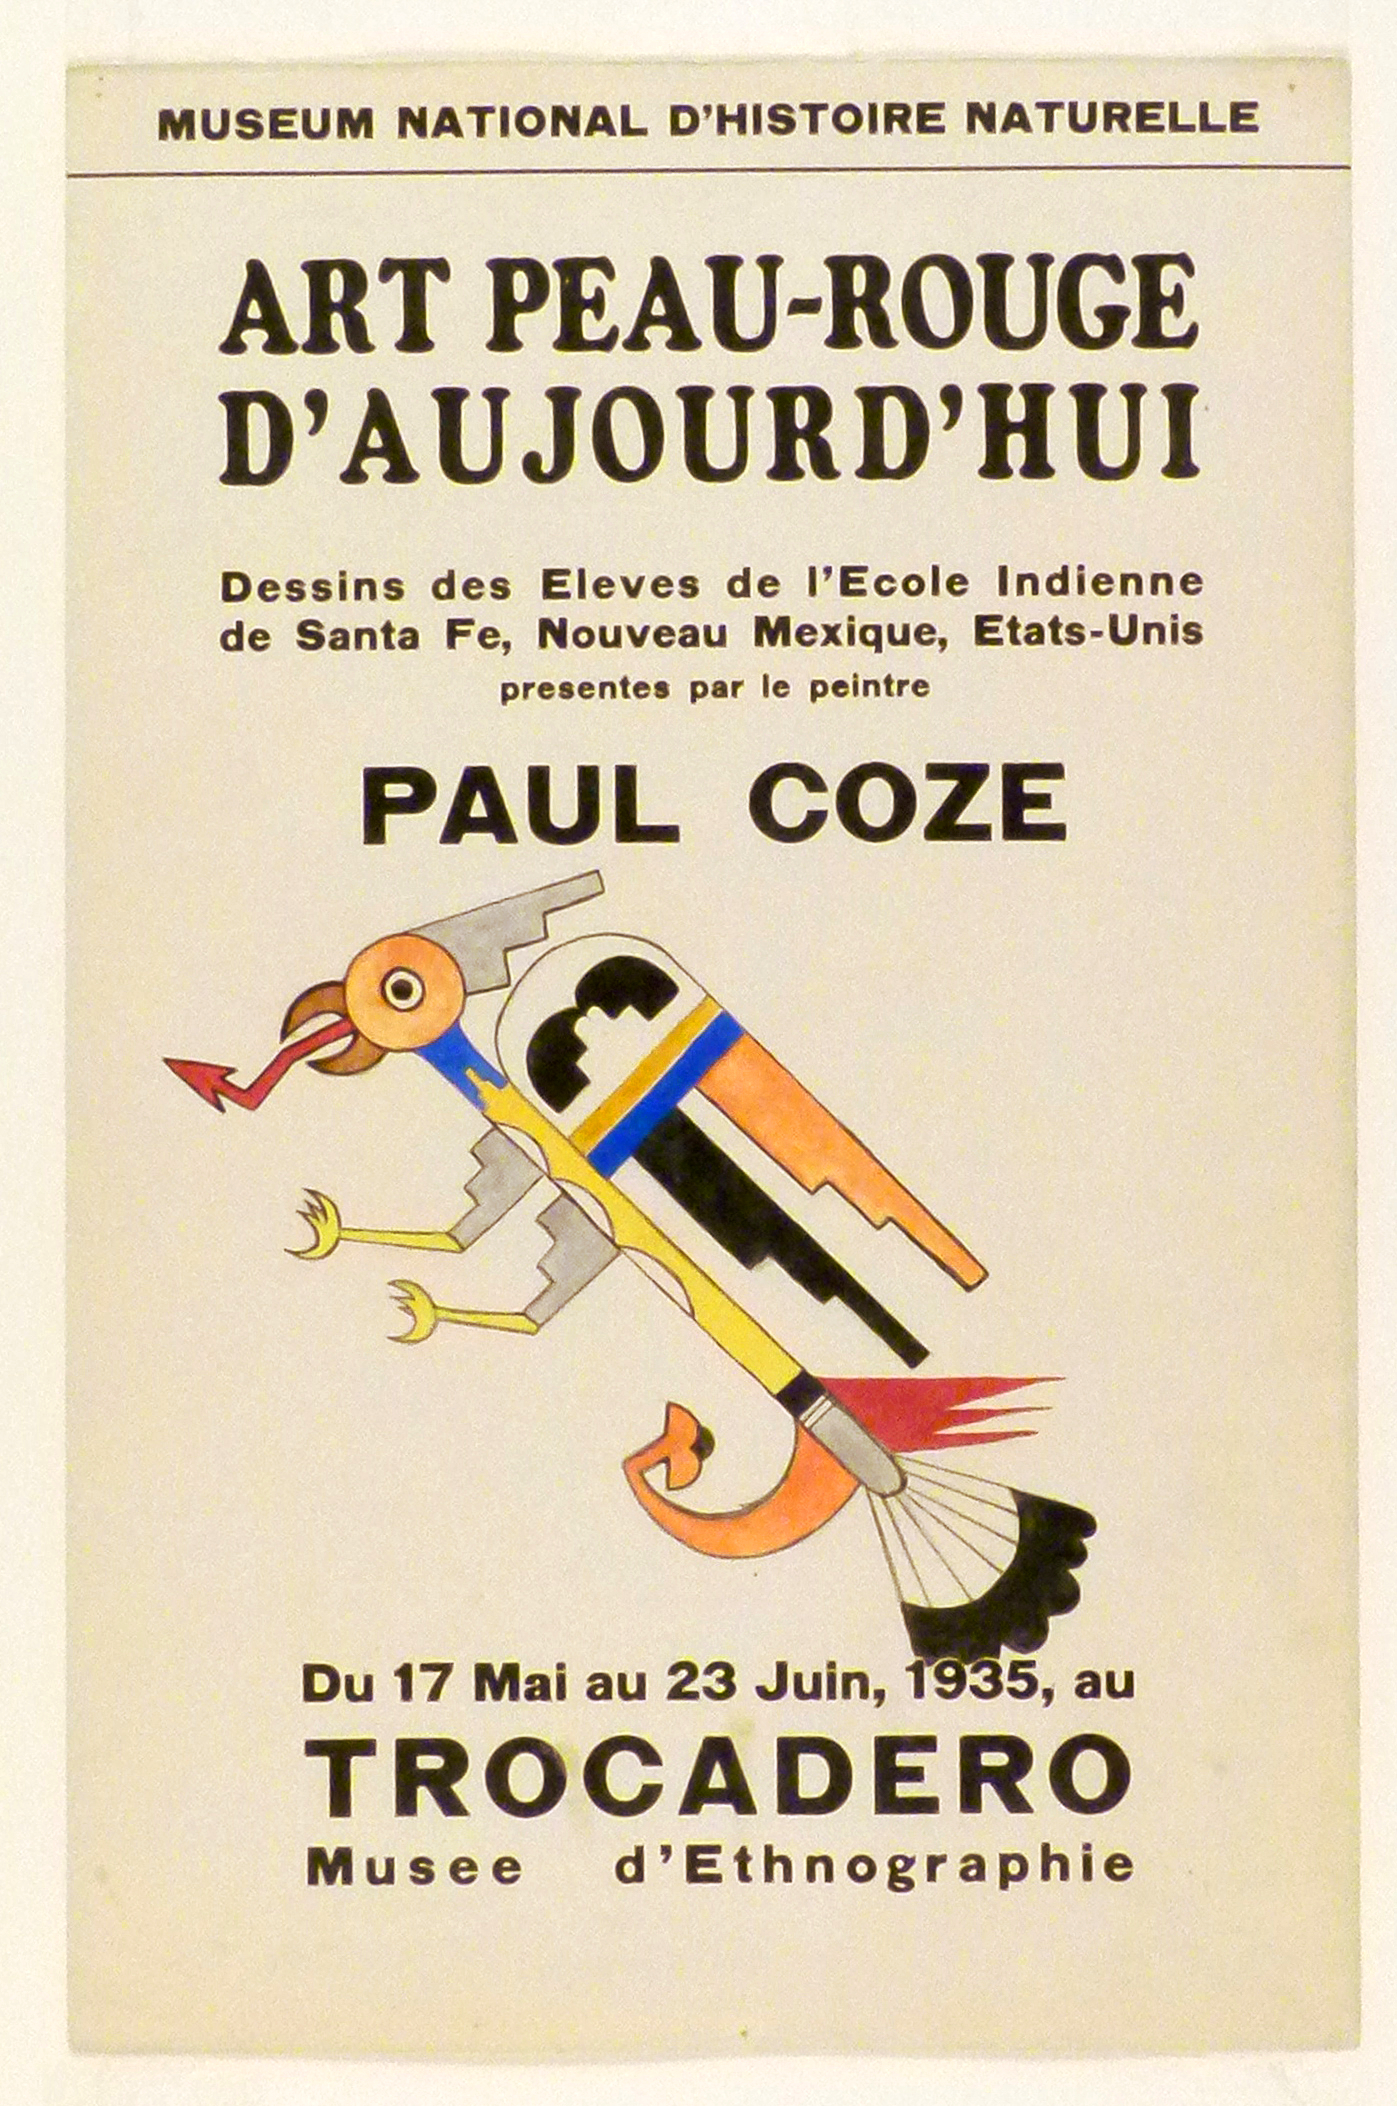 Art Exhibition Poster with painting of bird-like figure comprised of brightly-colored geometric shapes, its talons extended as it flies toward the left.